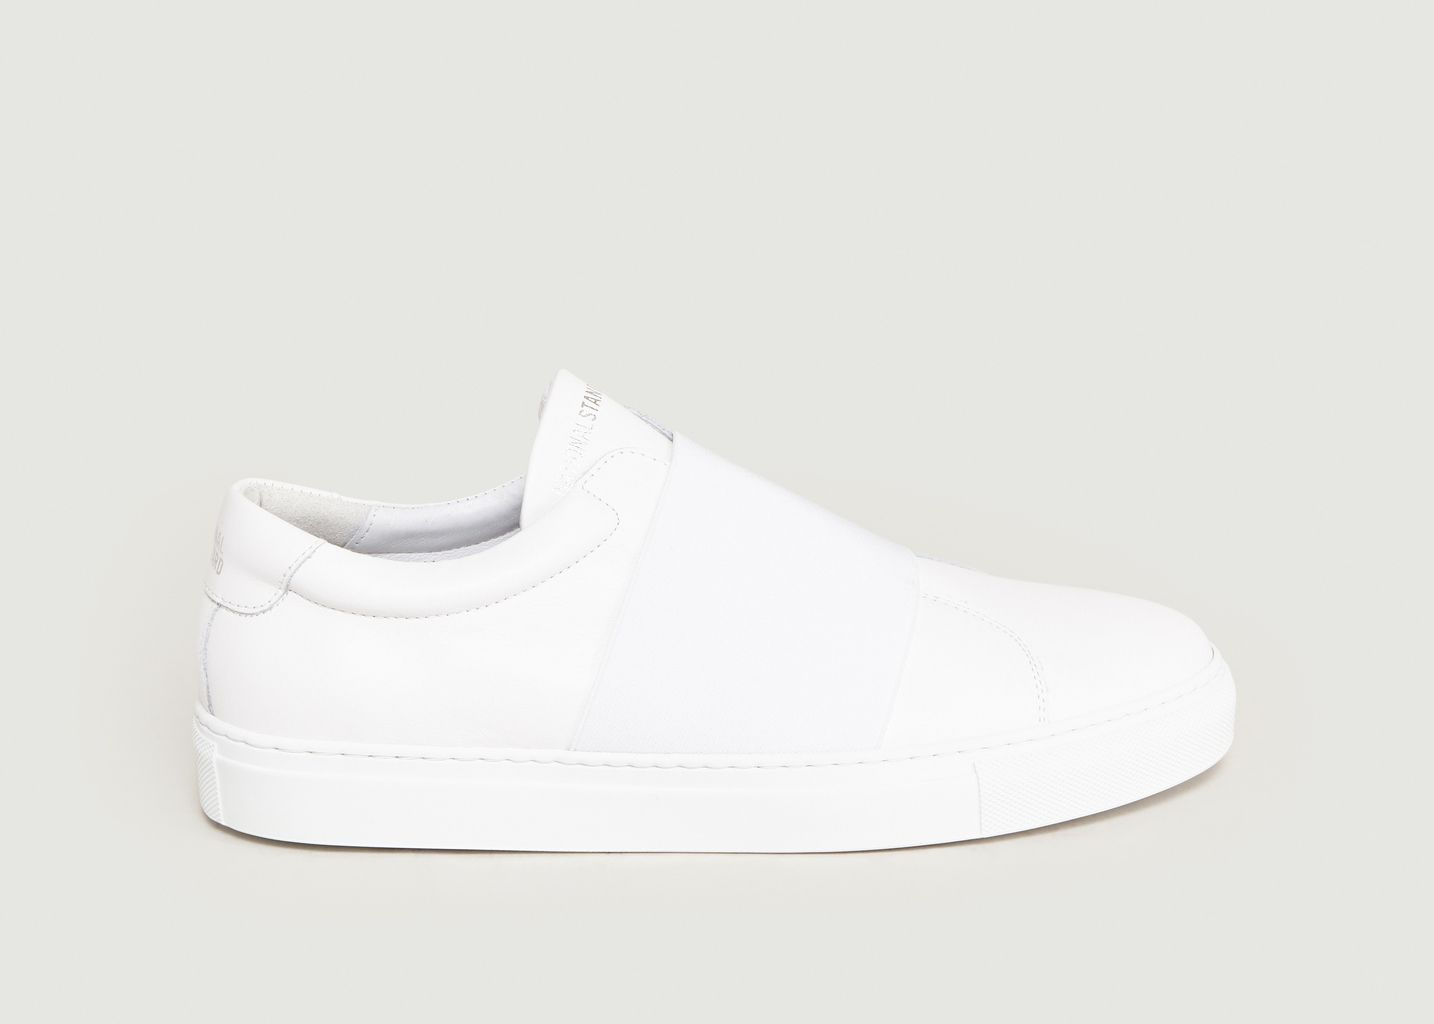 Sneakers Edition 33 - National Standard